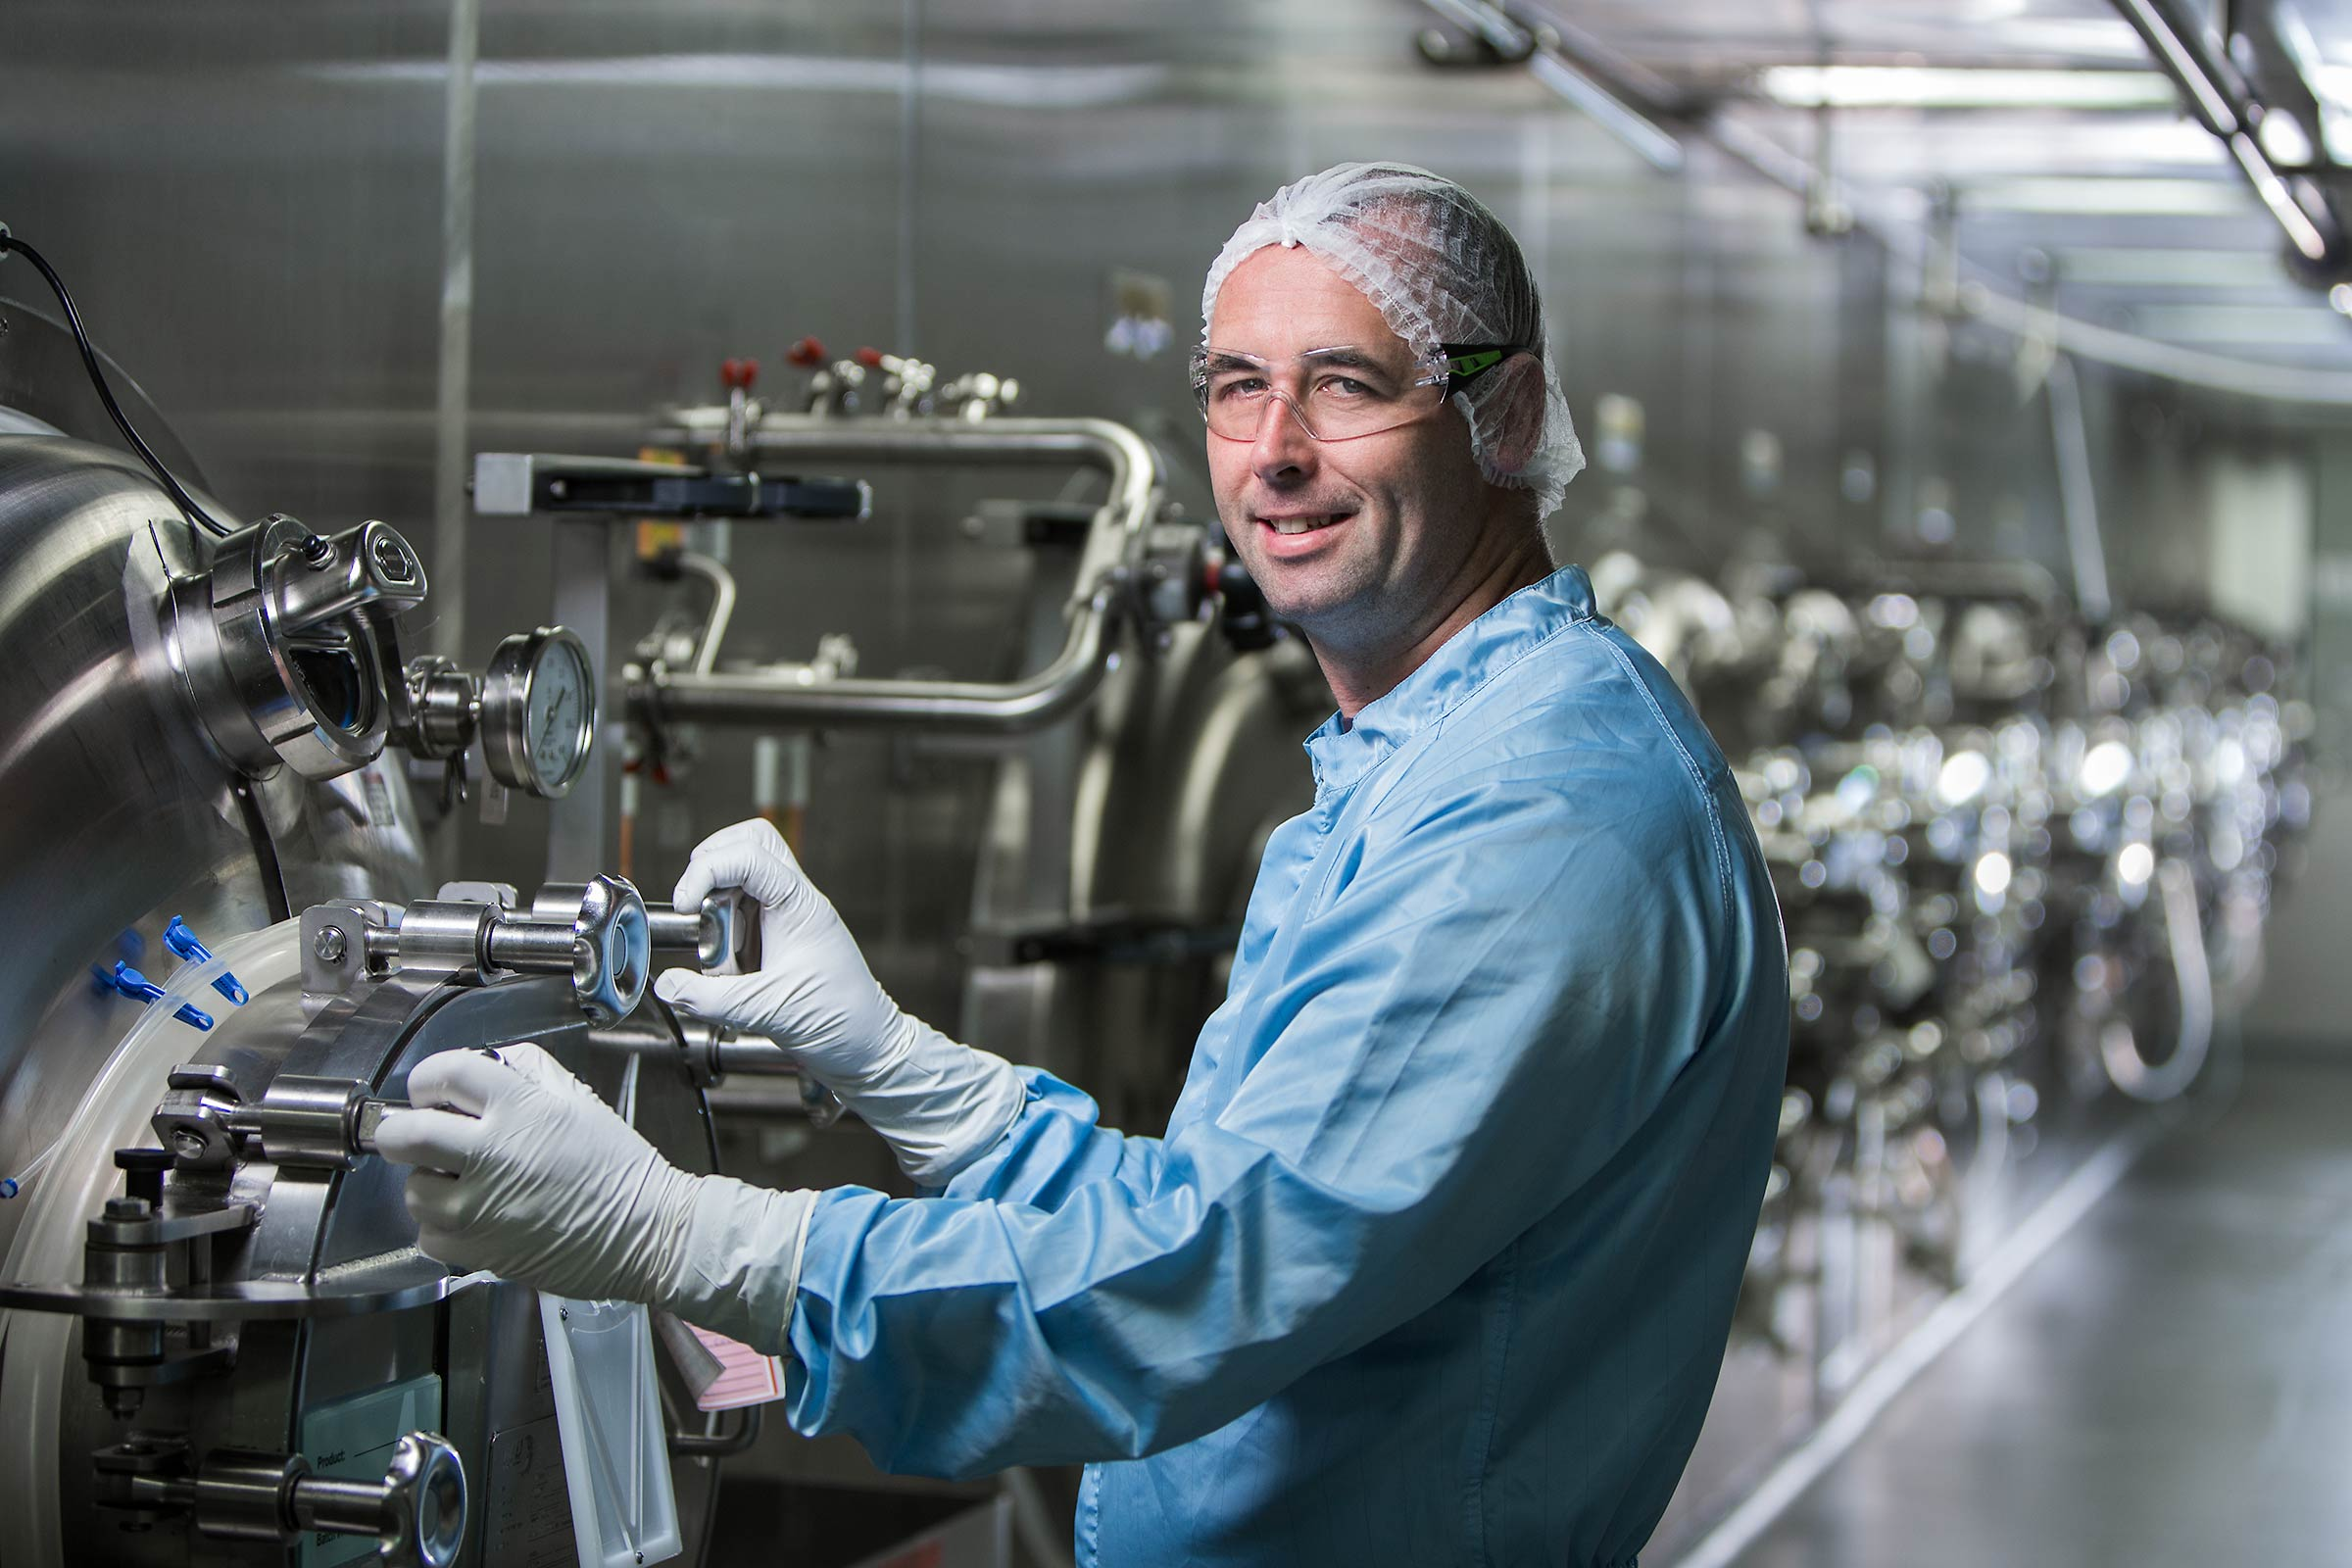 Pharmaceutical Manufacturing Technician Portrait in tech facility